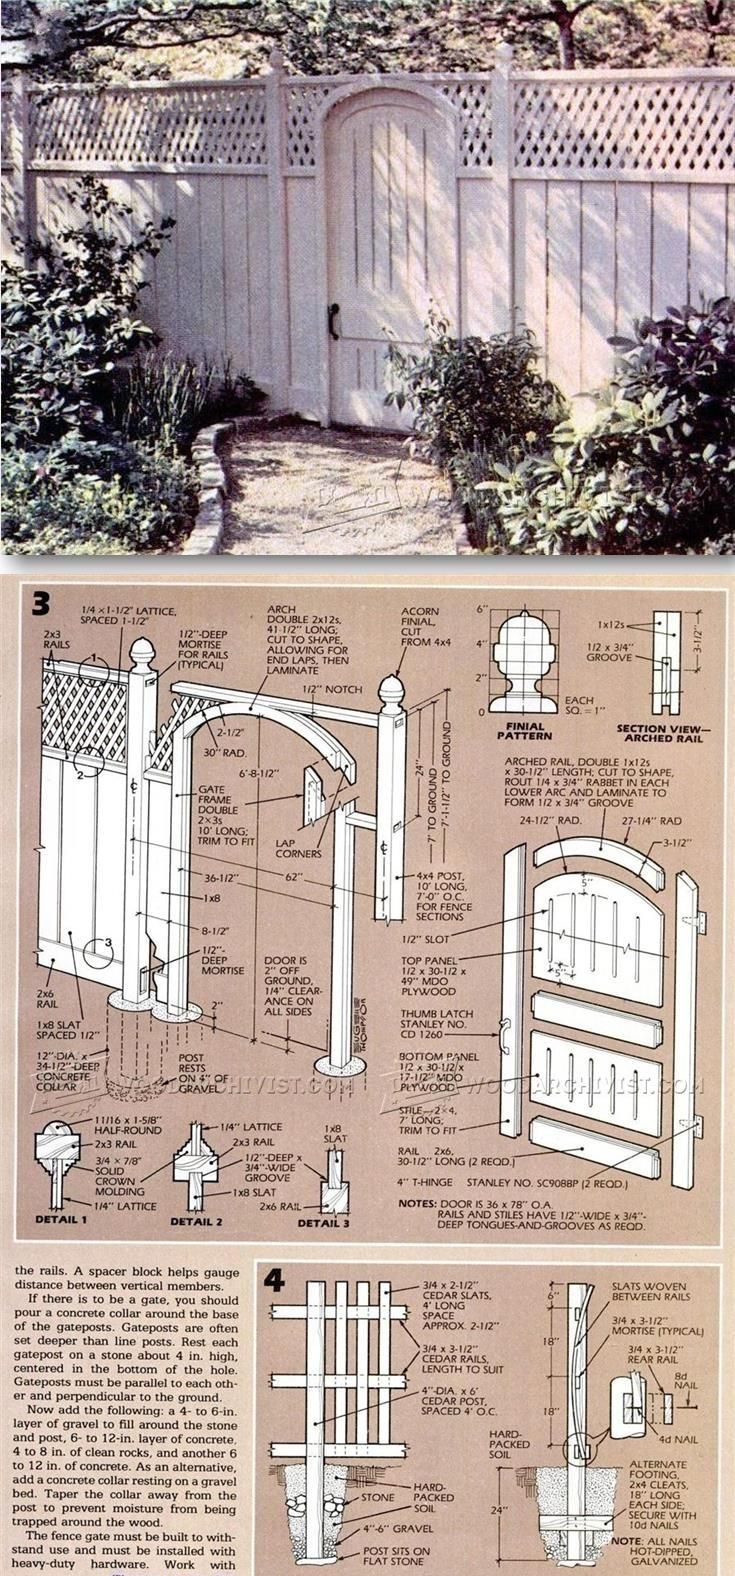 Wood Fence Plans - Outdoor Plans and Projects